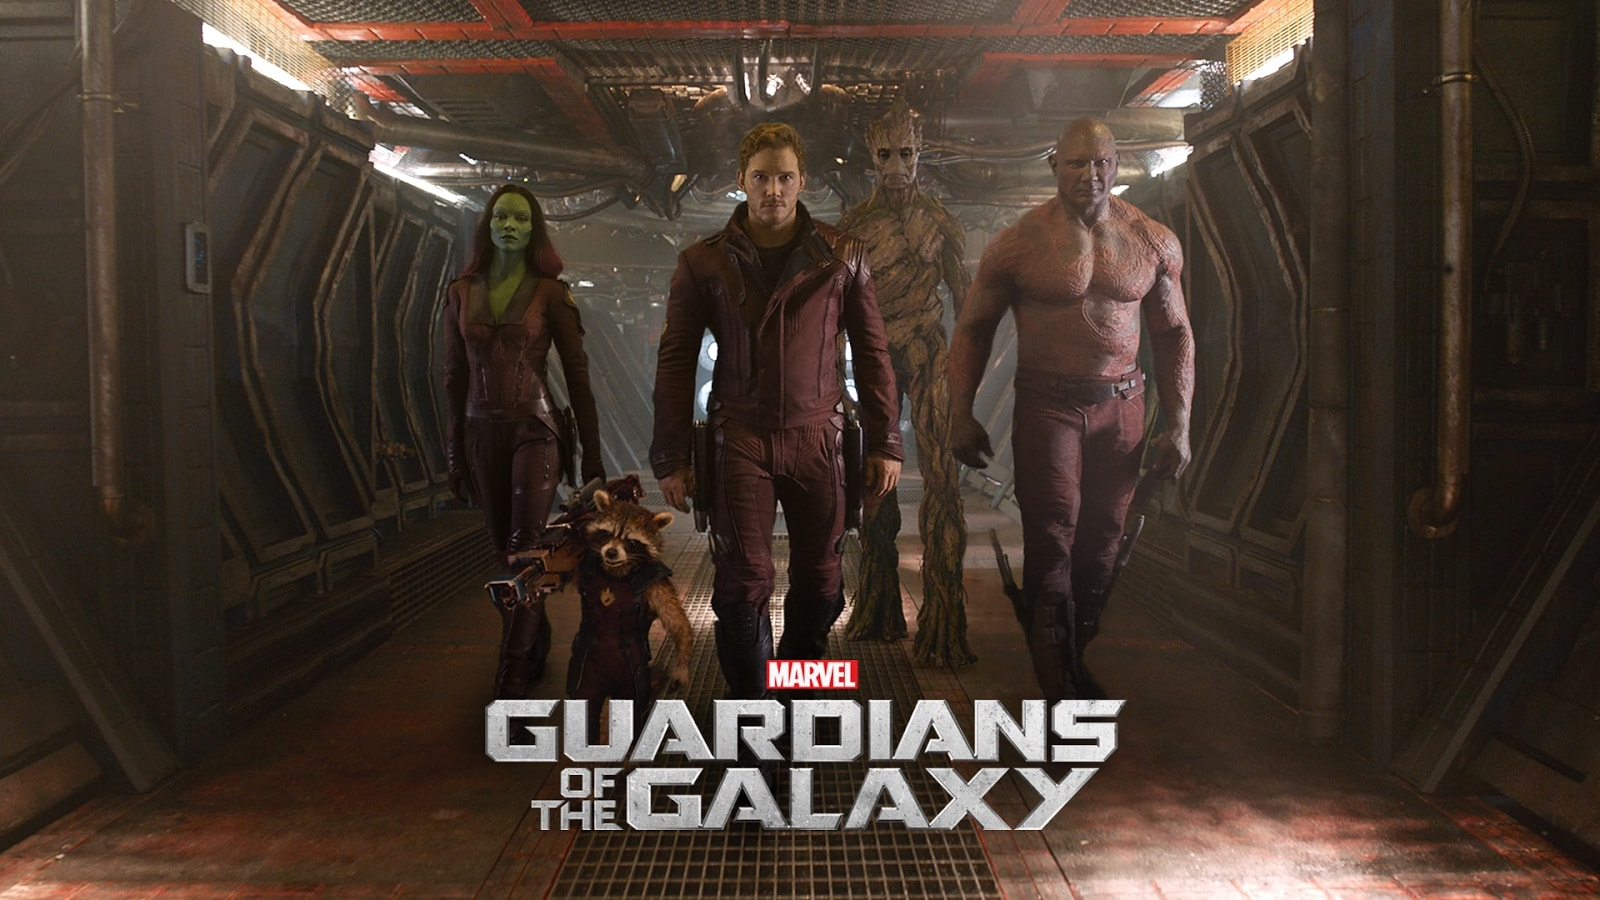 Guardians Of The Galaxy full hd wallpapers